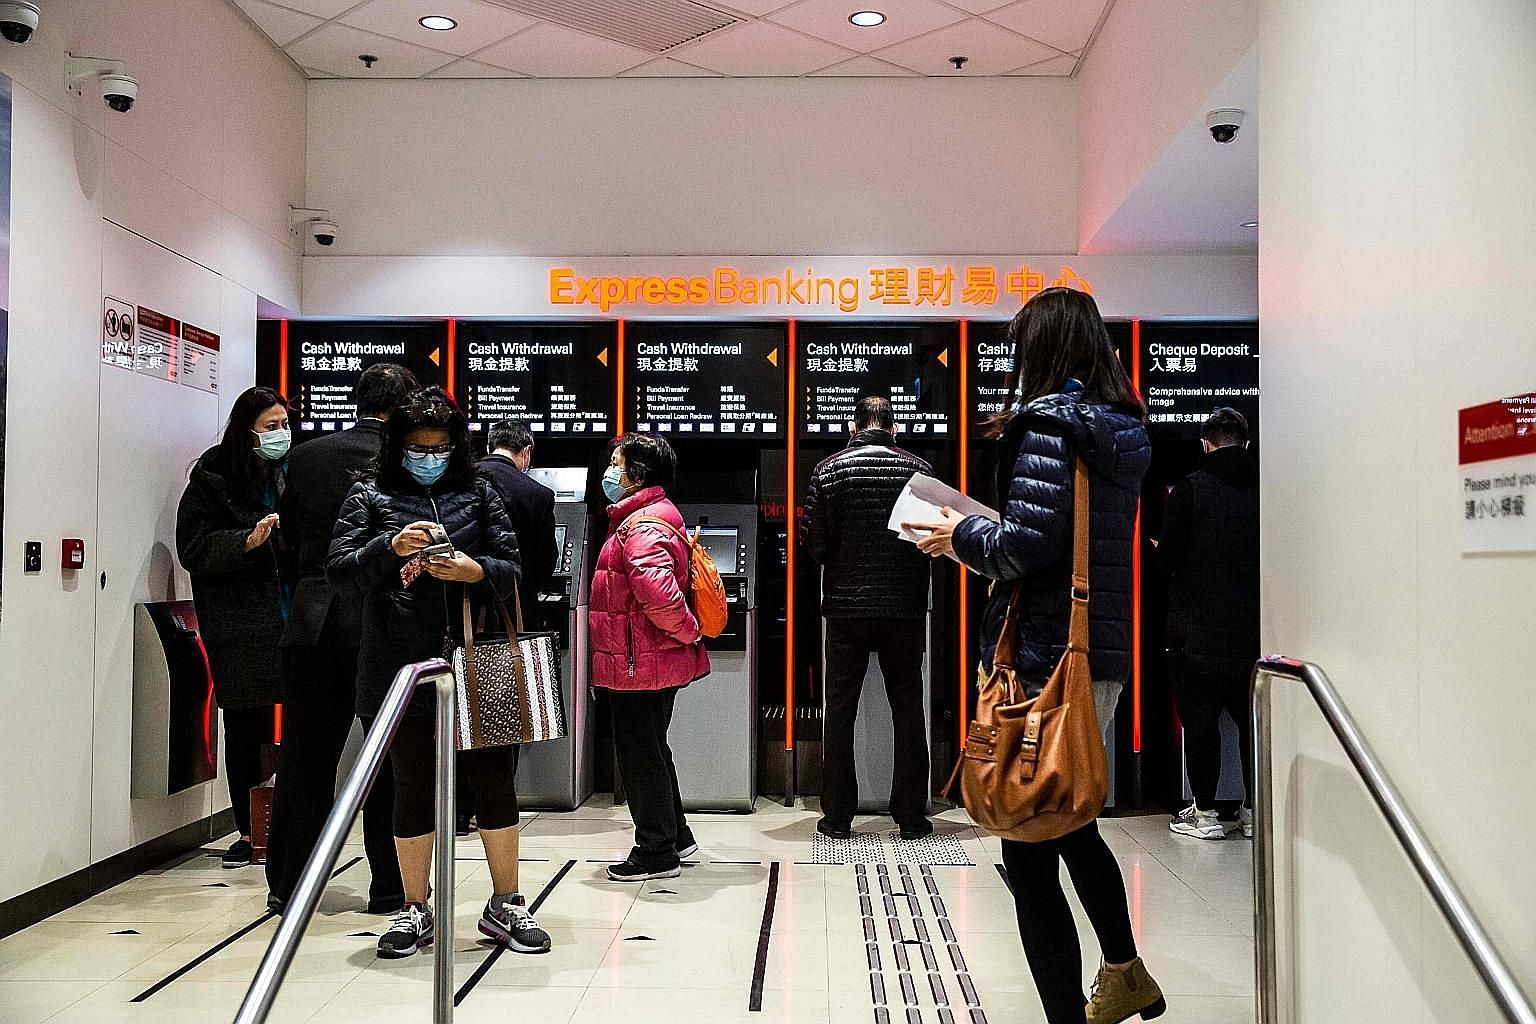 Customers using the express banking services inside an HSBC branch in Hong Kong yesterday. The bank says it would merge its private banking and wealth businesses, axe European stock trading and cut US retail branches. HSBC will, instead, accelerate i